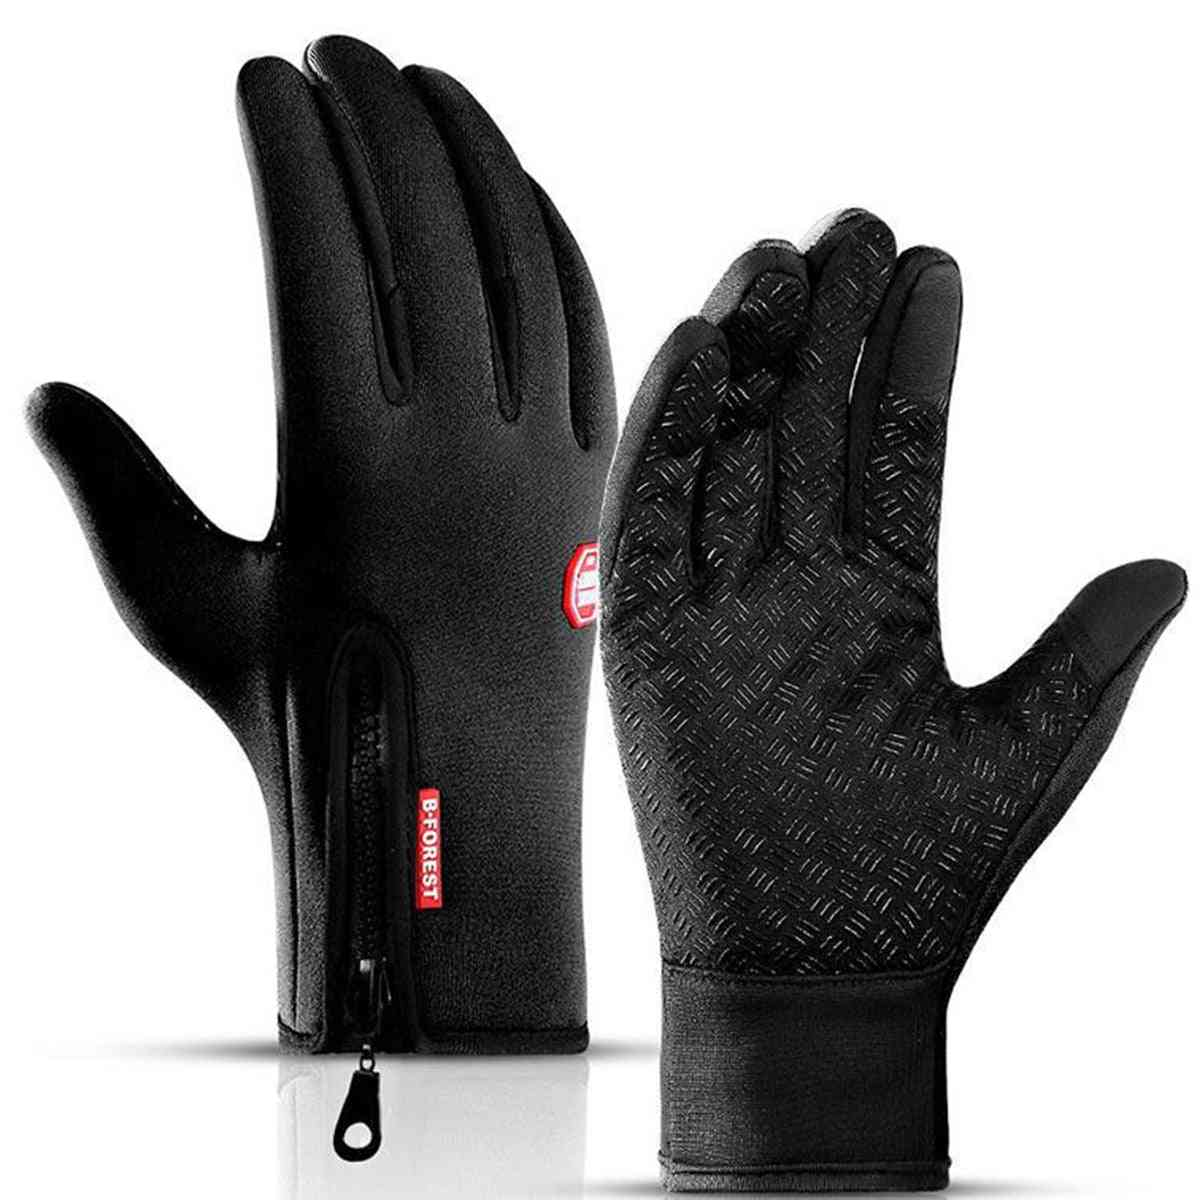 Unisex Touch Screen Windproof Ski Horse Riding Gloves